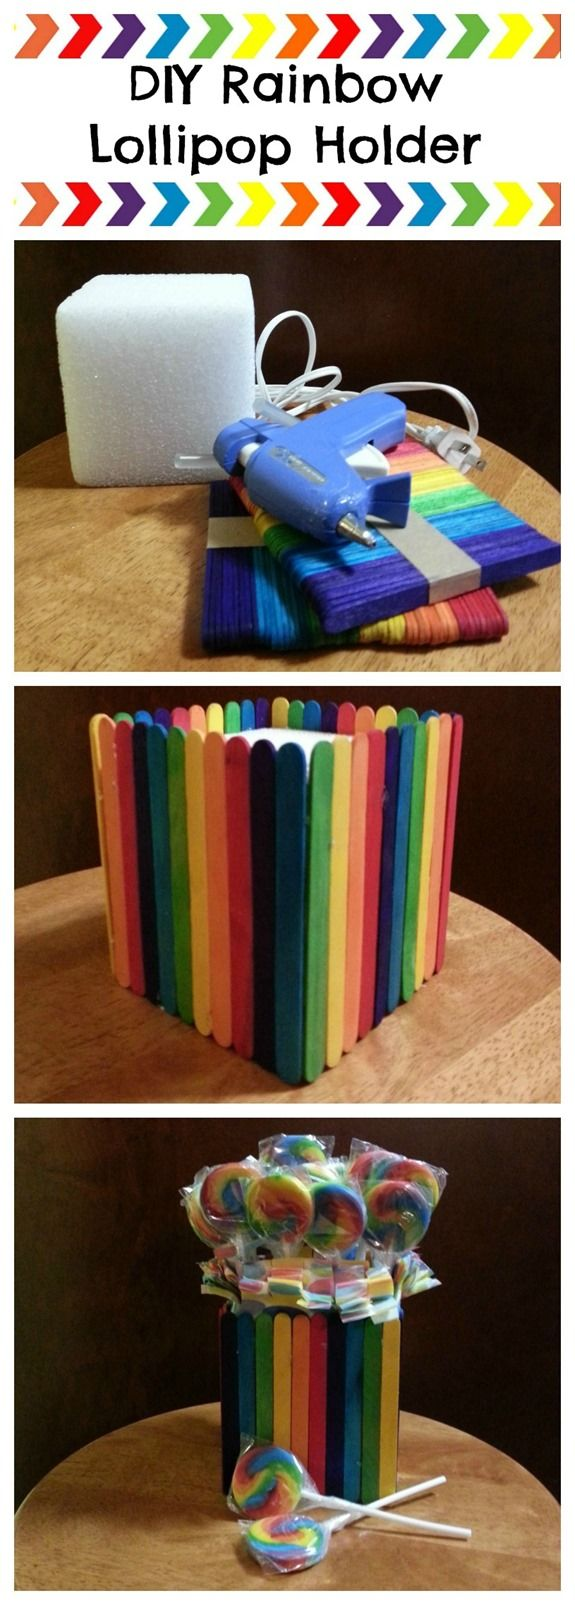 DIY Rainbow Lollipop Holder. A great craft idea and DIY centerpiece to complete your rainbow party theme.